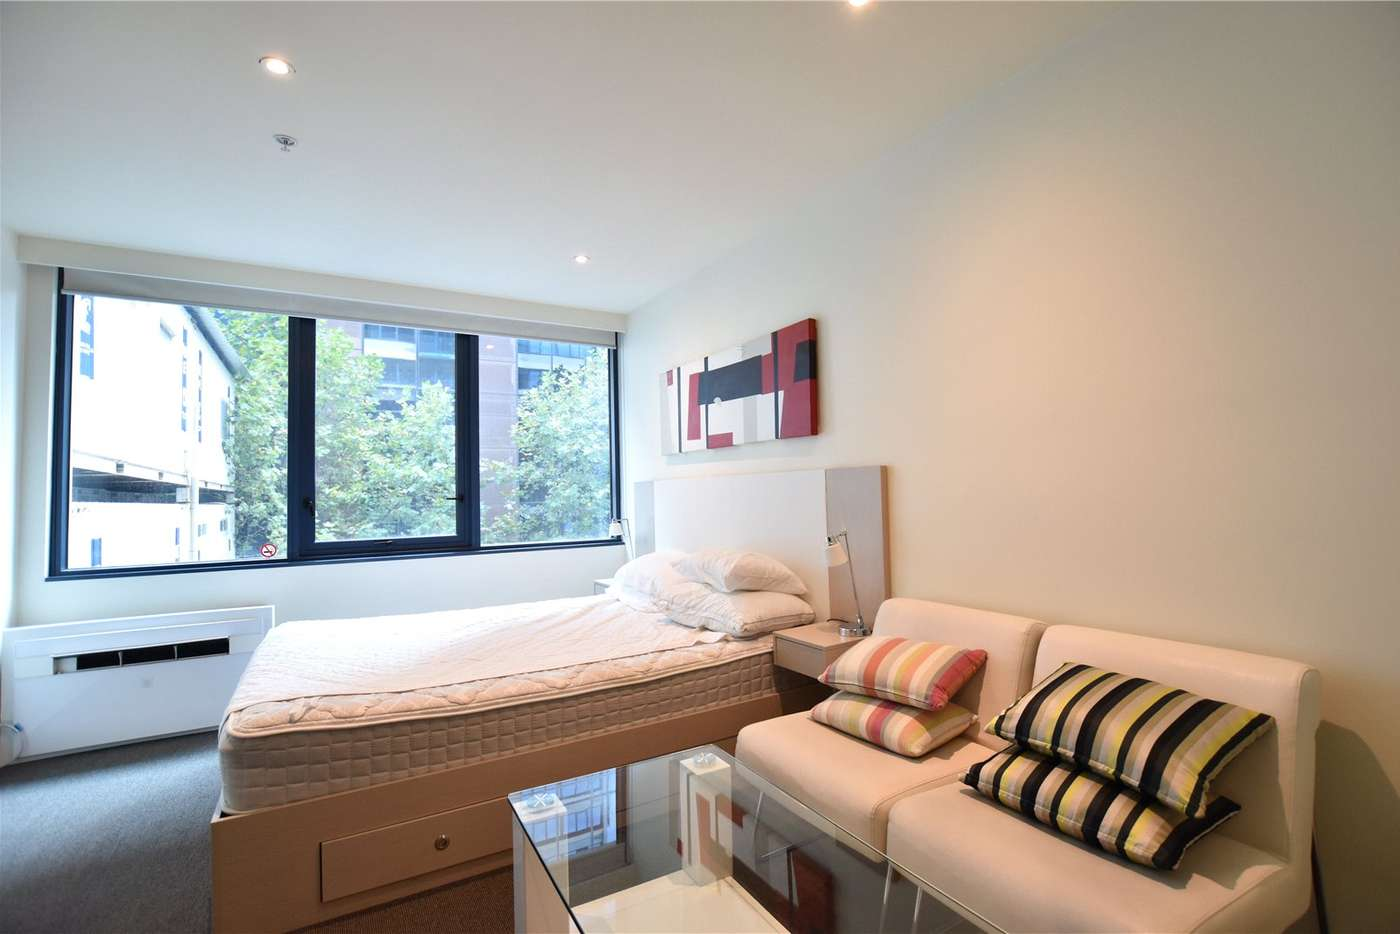 Main view of Homely studio listing, 301/181 ABeckett Street, Melbourne VIC 3000